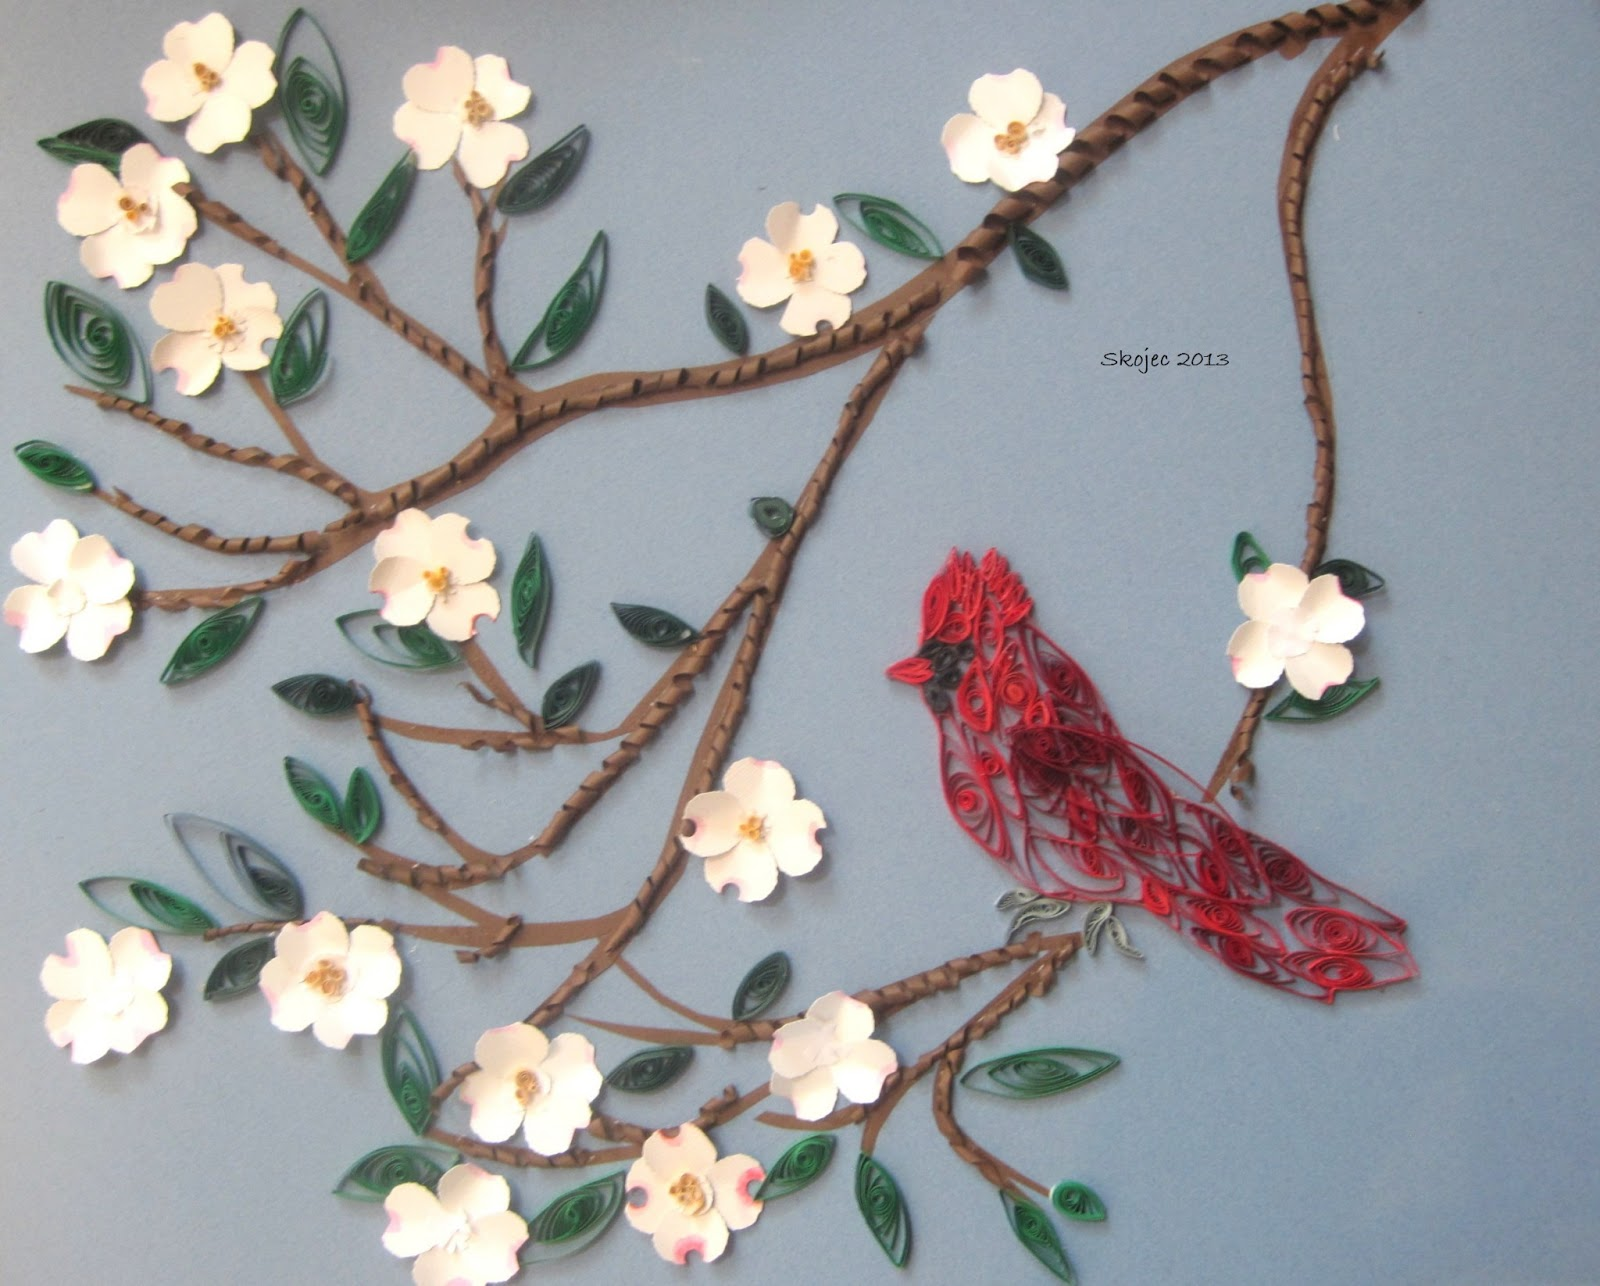 Red Dogwood Tree Branches For Decoration